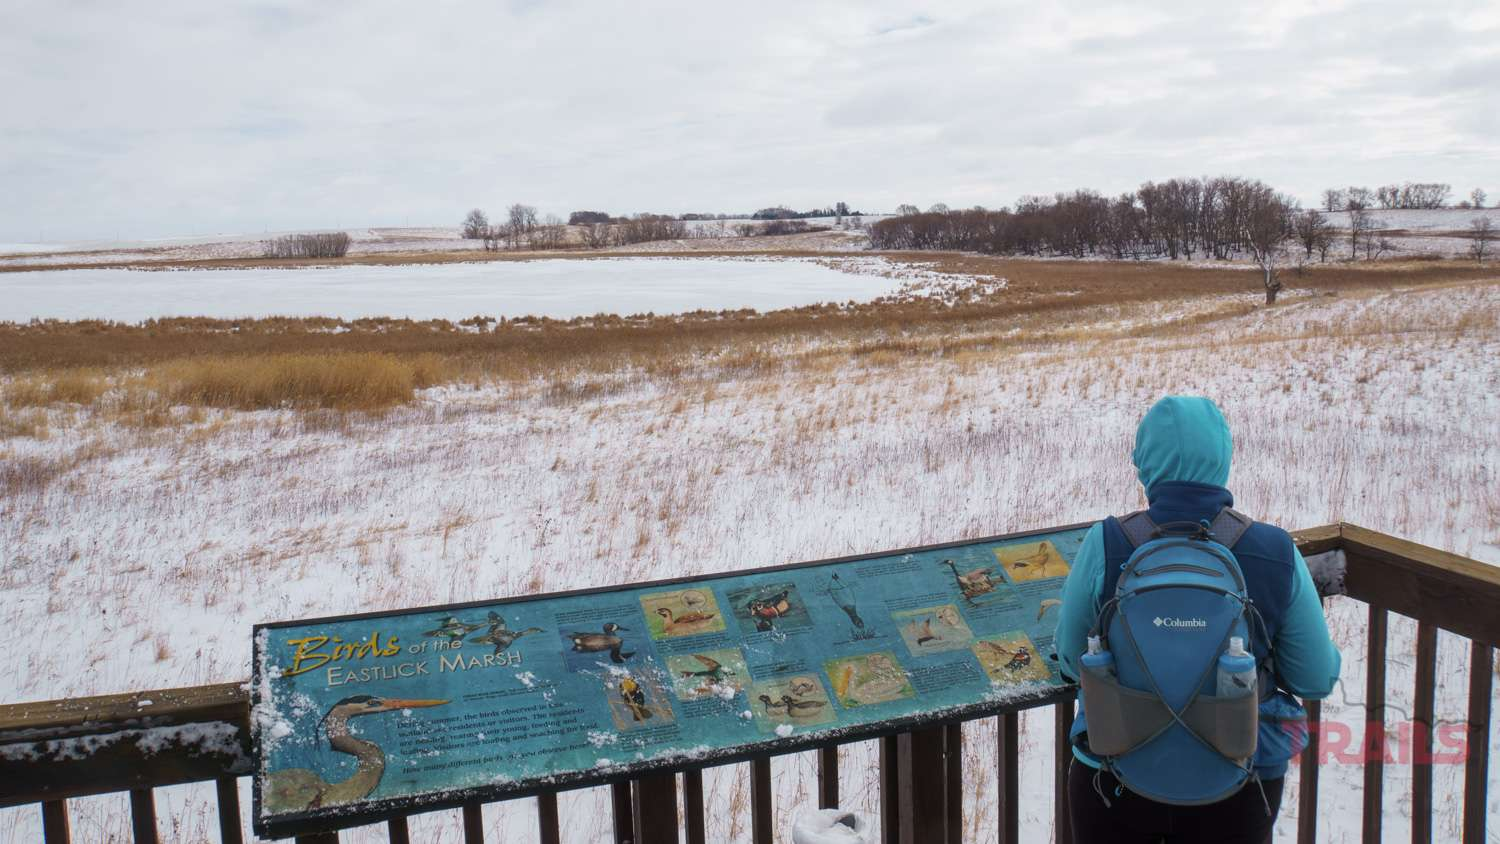 A woman looks out over a frozen lake in the prairie from a viewing platform